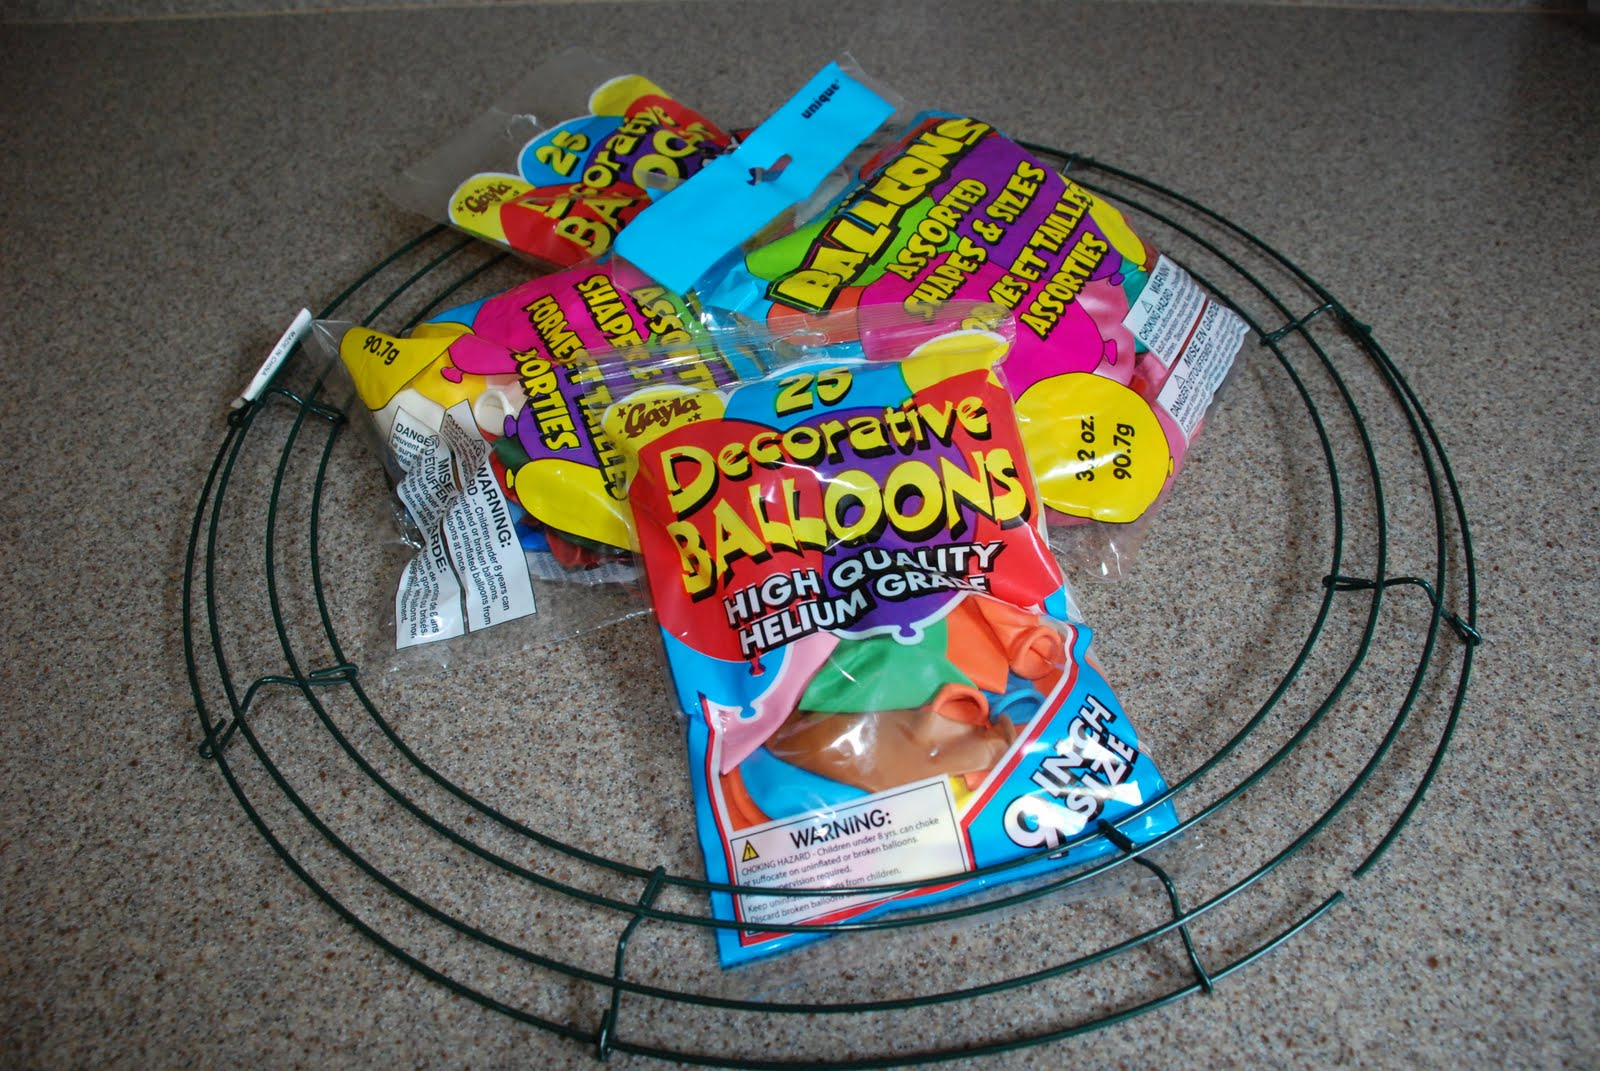 I Started Out With A Wire Wreath Found At Micheals For 299 And About 8 Bags Of Balloons From The Dollar Store